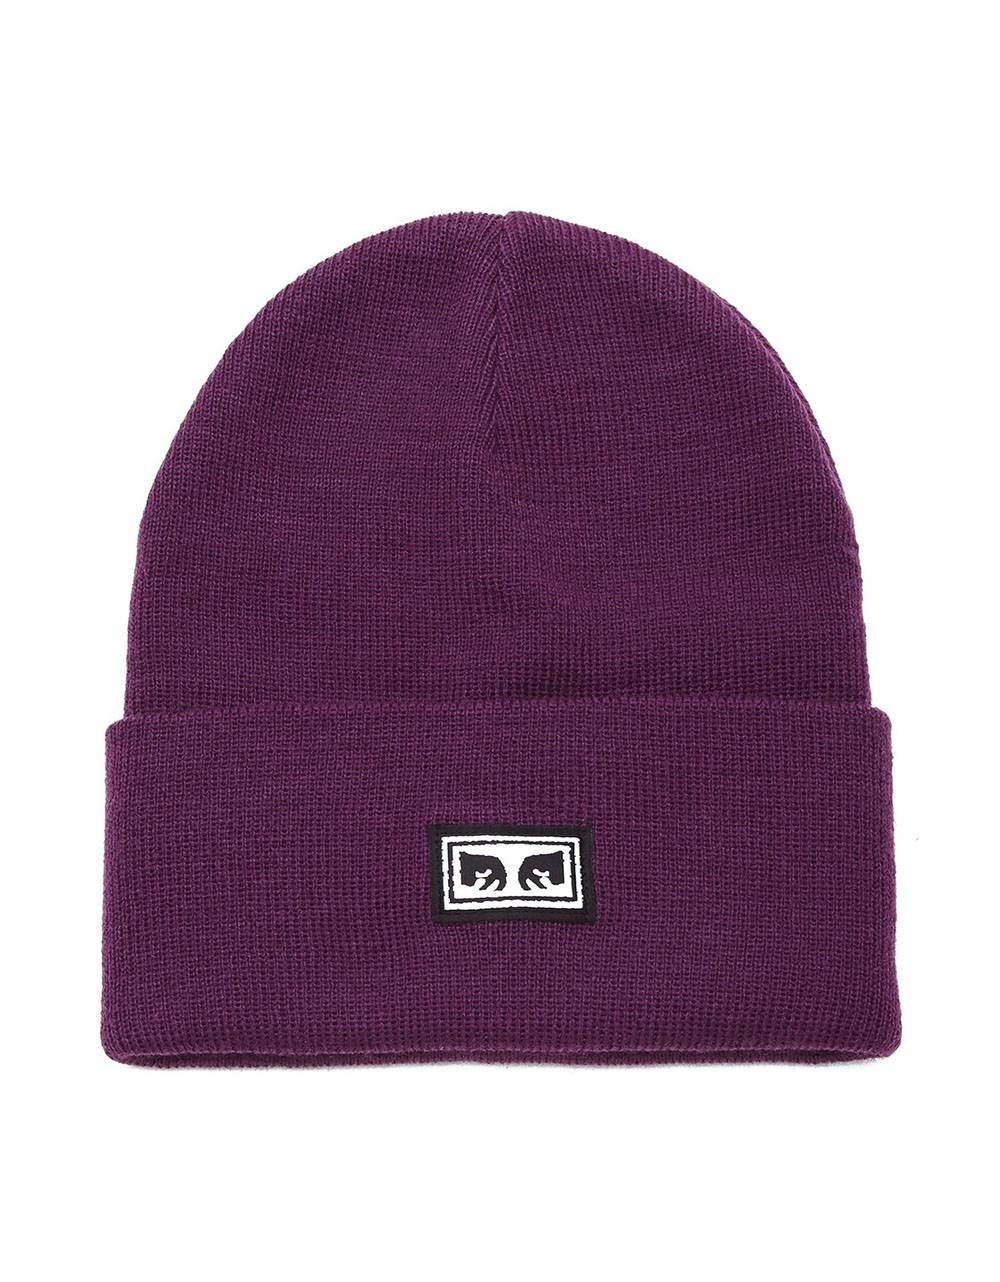 Obey icon eyes beanie - purple mountain obey Beanie 35,00 €